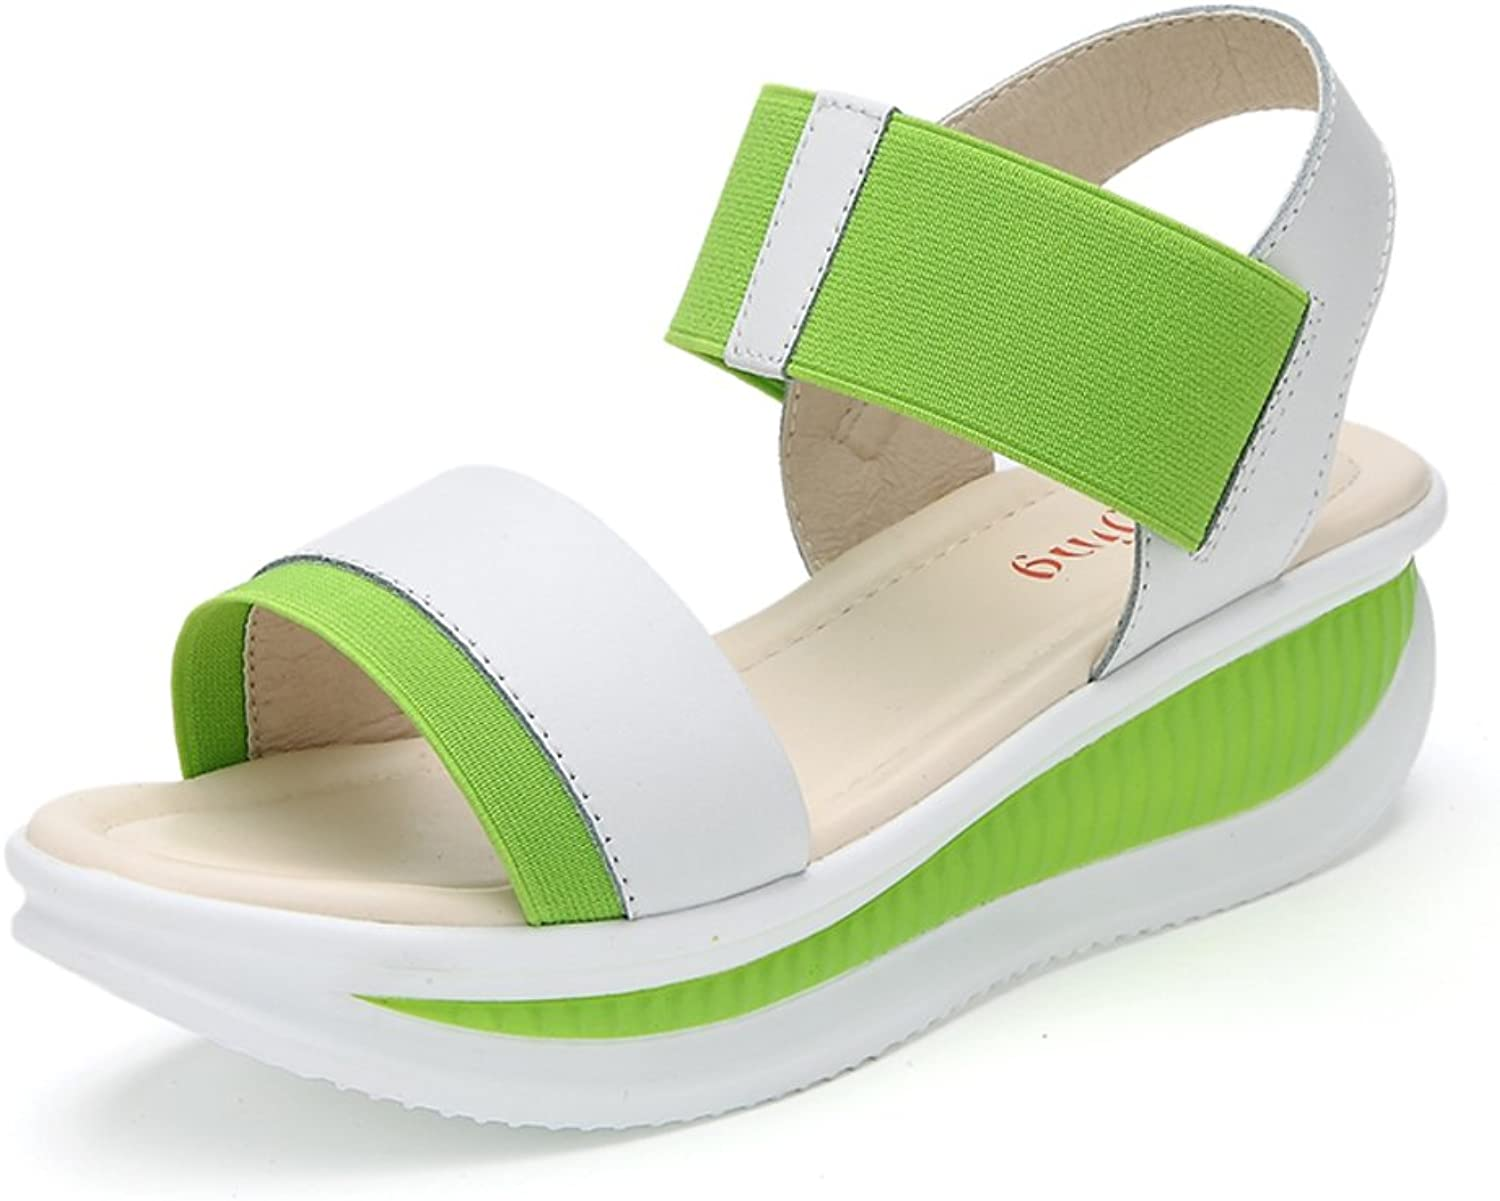 MET RXL Lady,Middle Heels,Anti-skidding,Shaking shoes Wedges,Thick-Soled,Casual Sandals